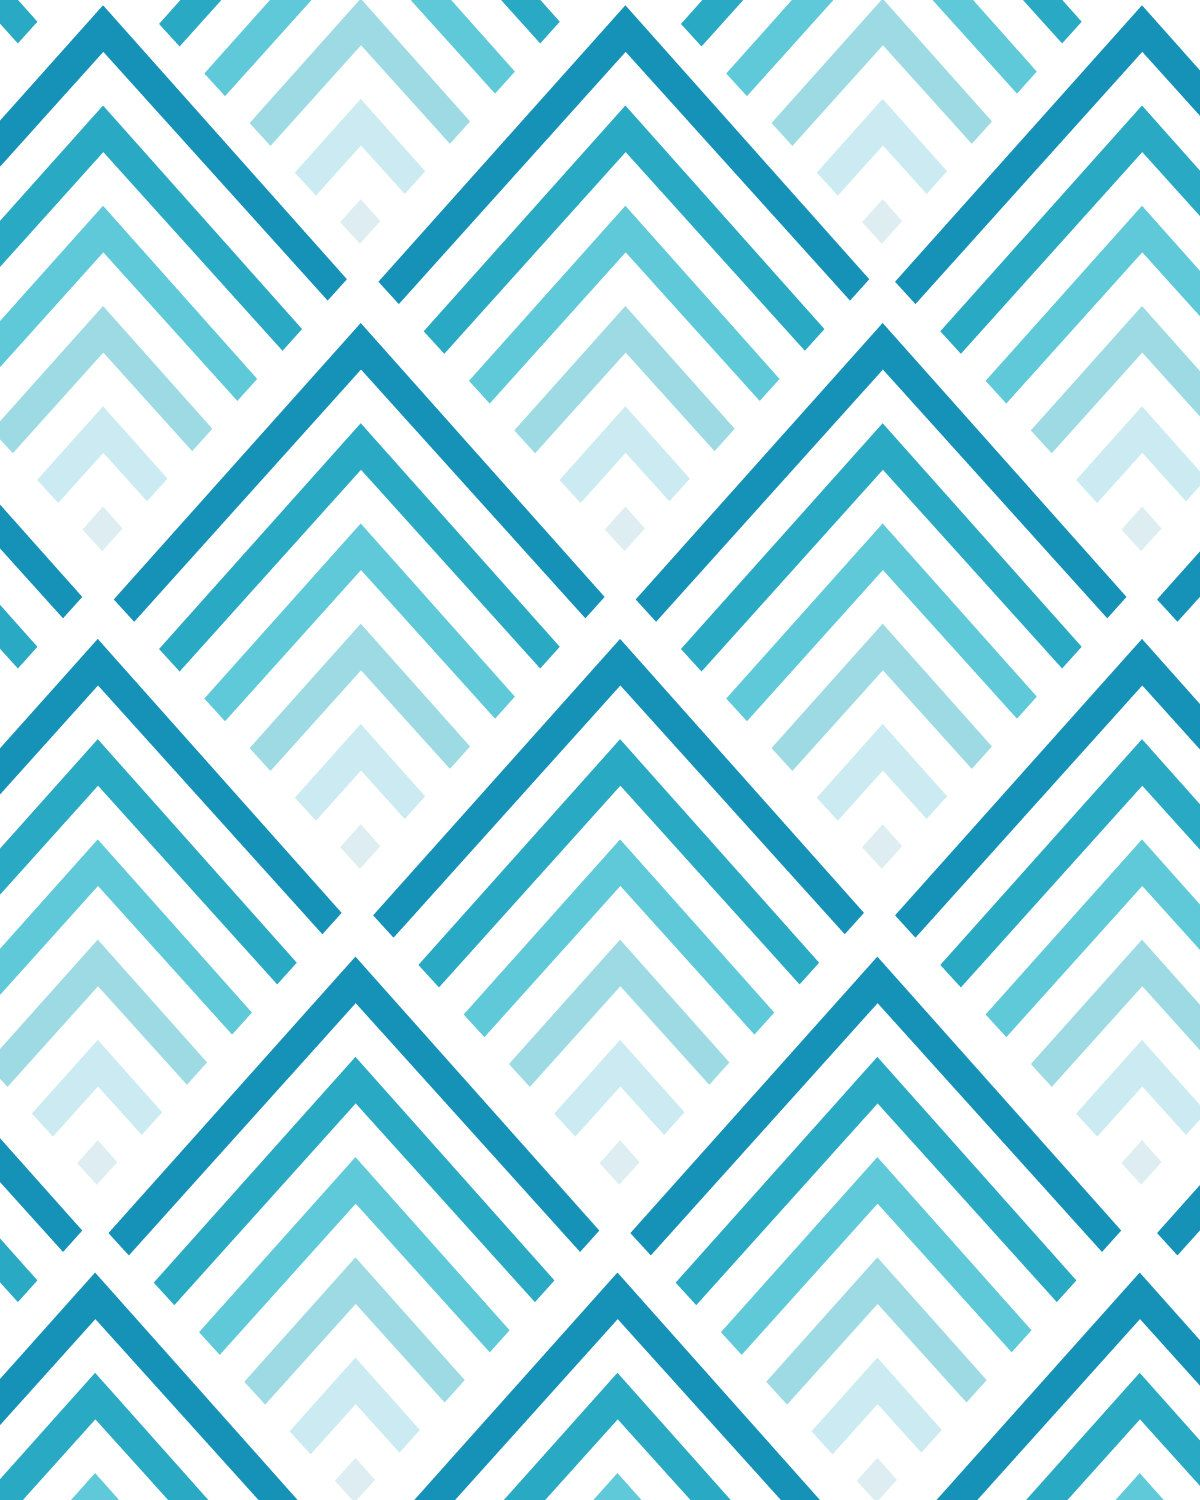 shades of blue chevron pattern 8x10 inch art print 17